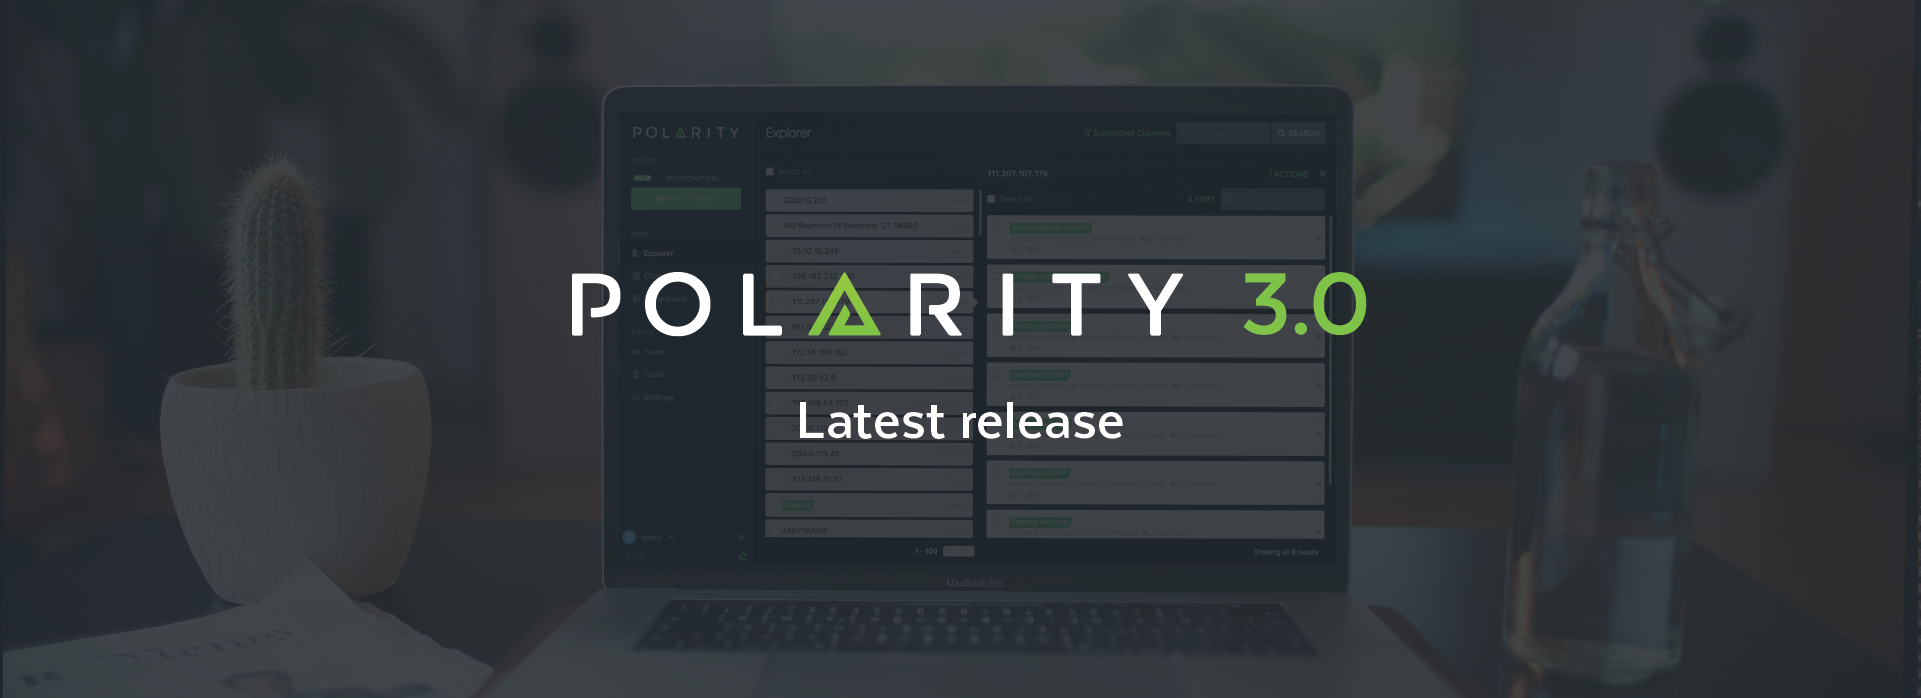 Our Latest Release - Polarity 3.0 cover image